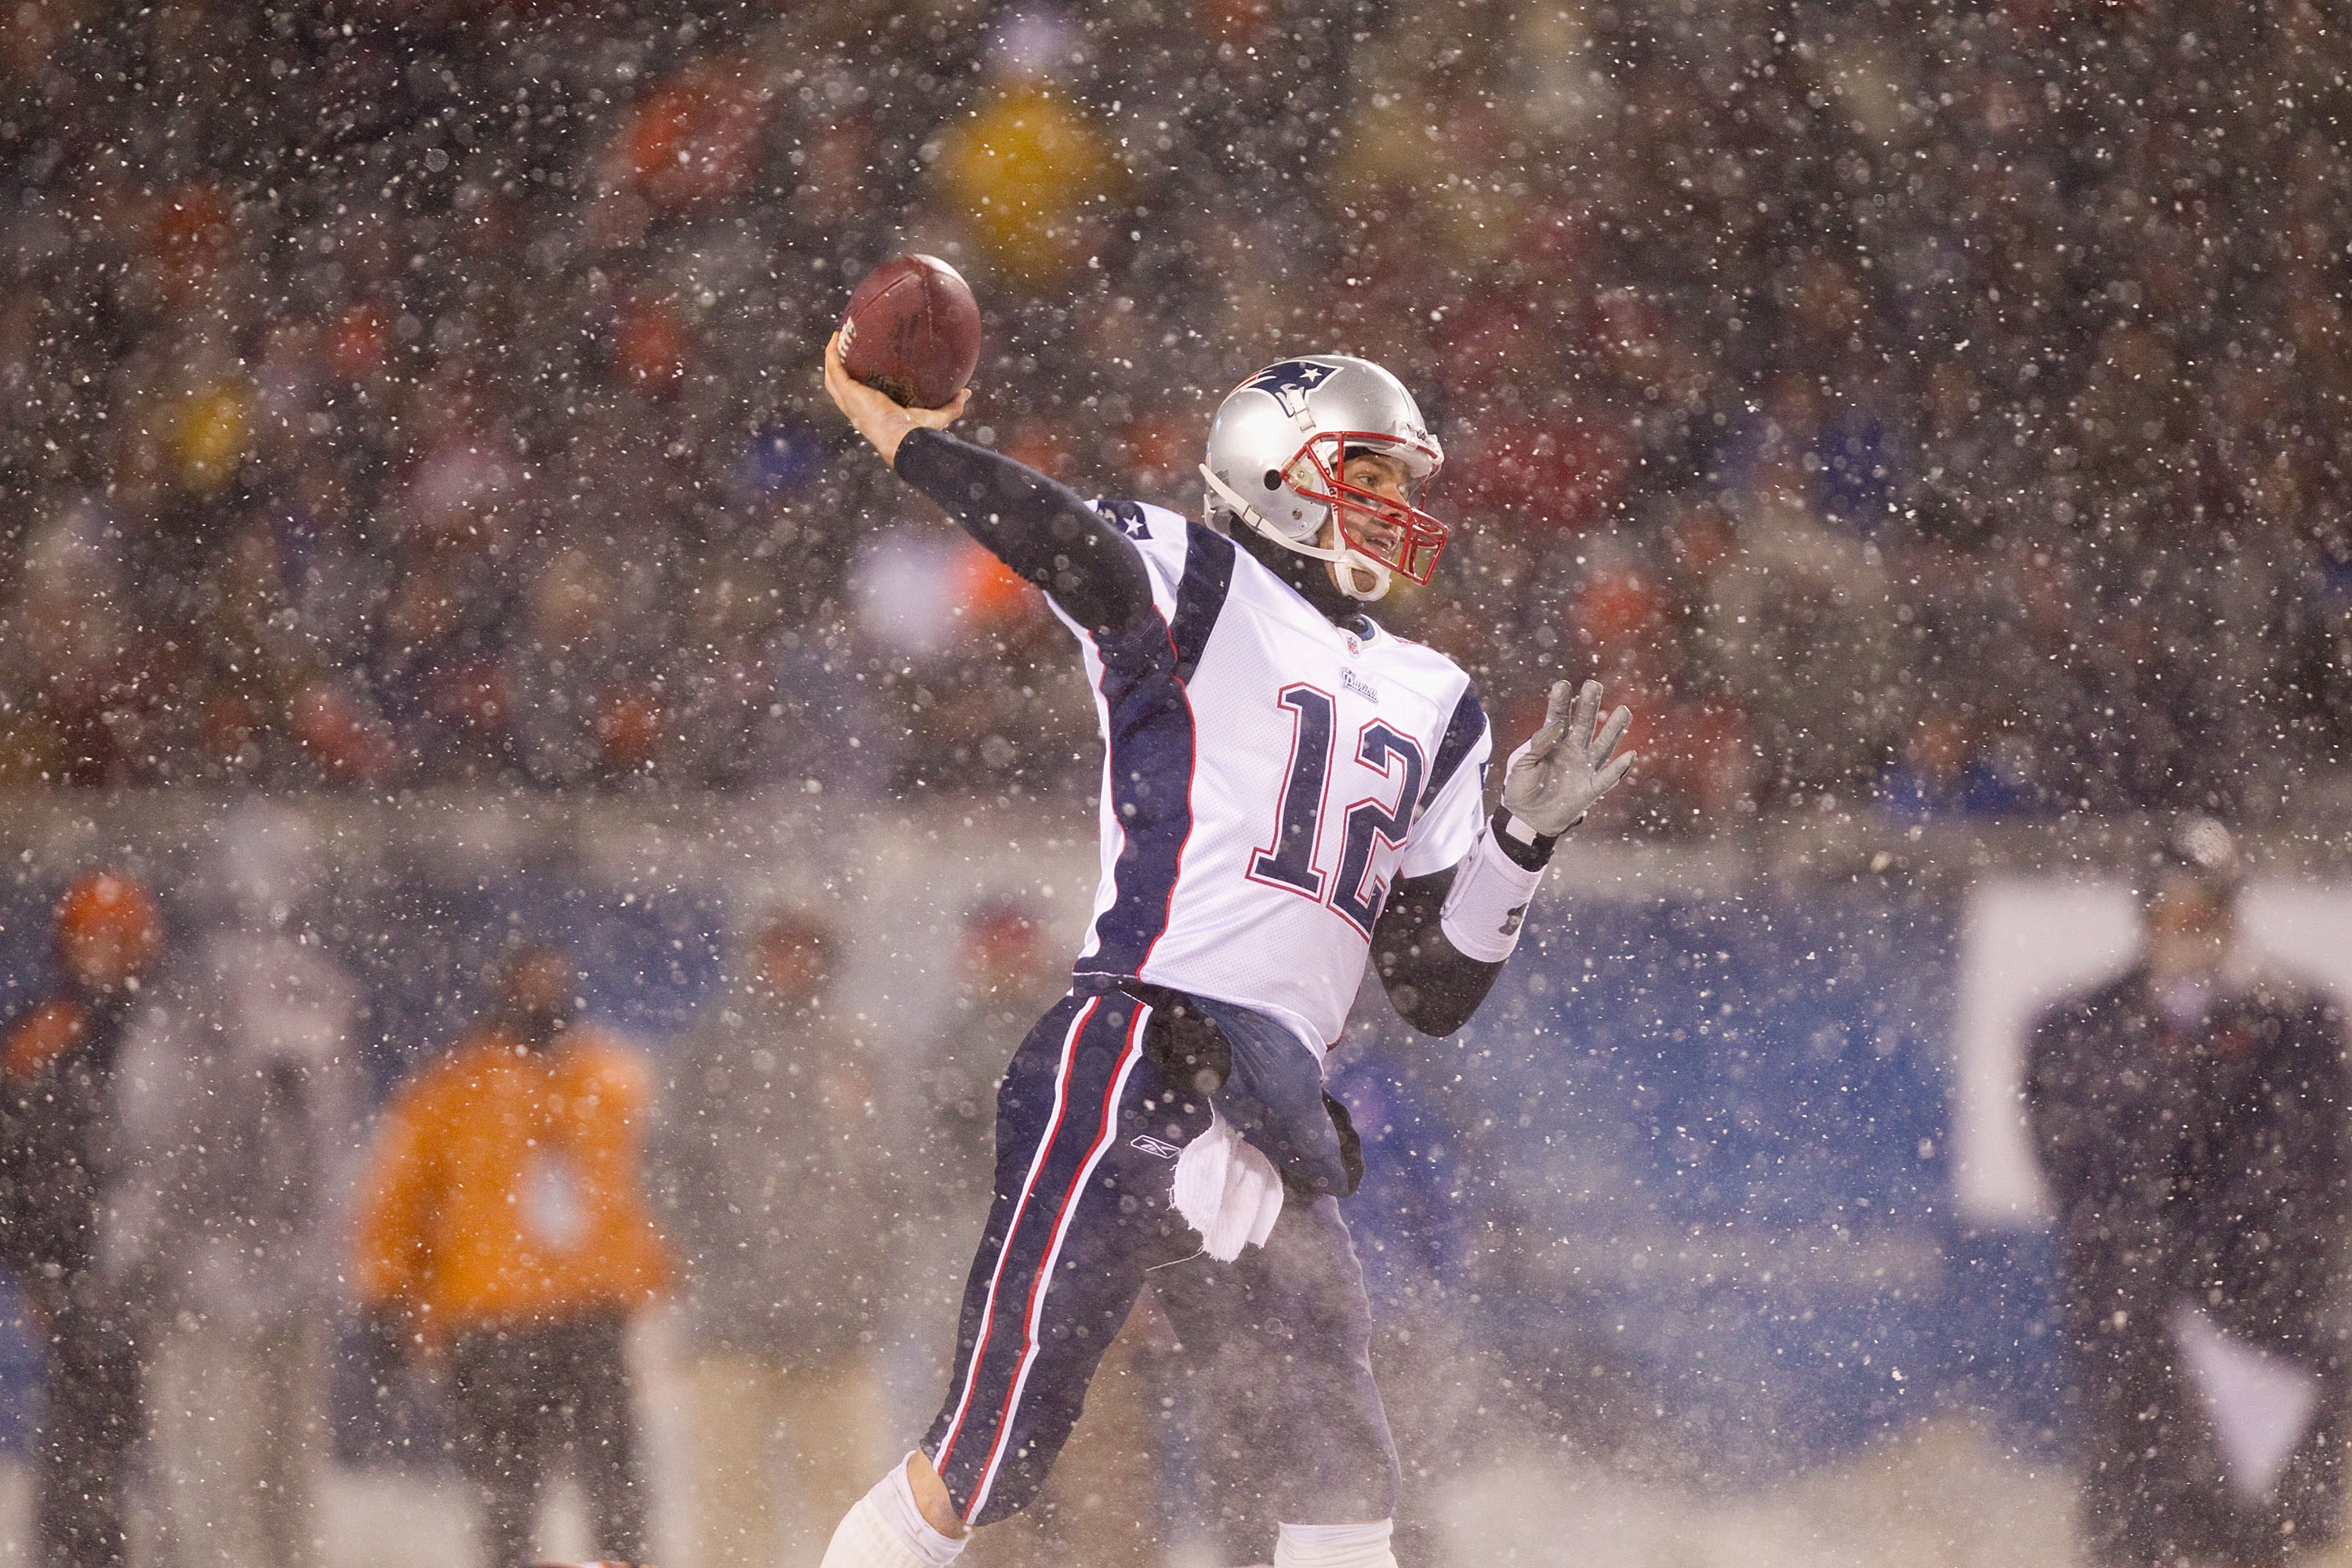 CHICAGO, IL - DECEMBER 12: Tom Brady #12 of the New England Patriots passes against the Chicago Bears at Soldier Field on December 12, 2010 in Chicago, Illinois.  The Patriots beat the Bears 36-7.  (Photo by Dilip Vishwanat/Getty Images)